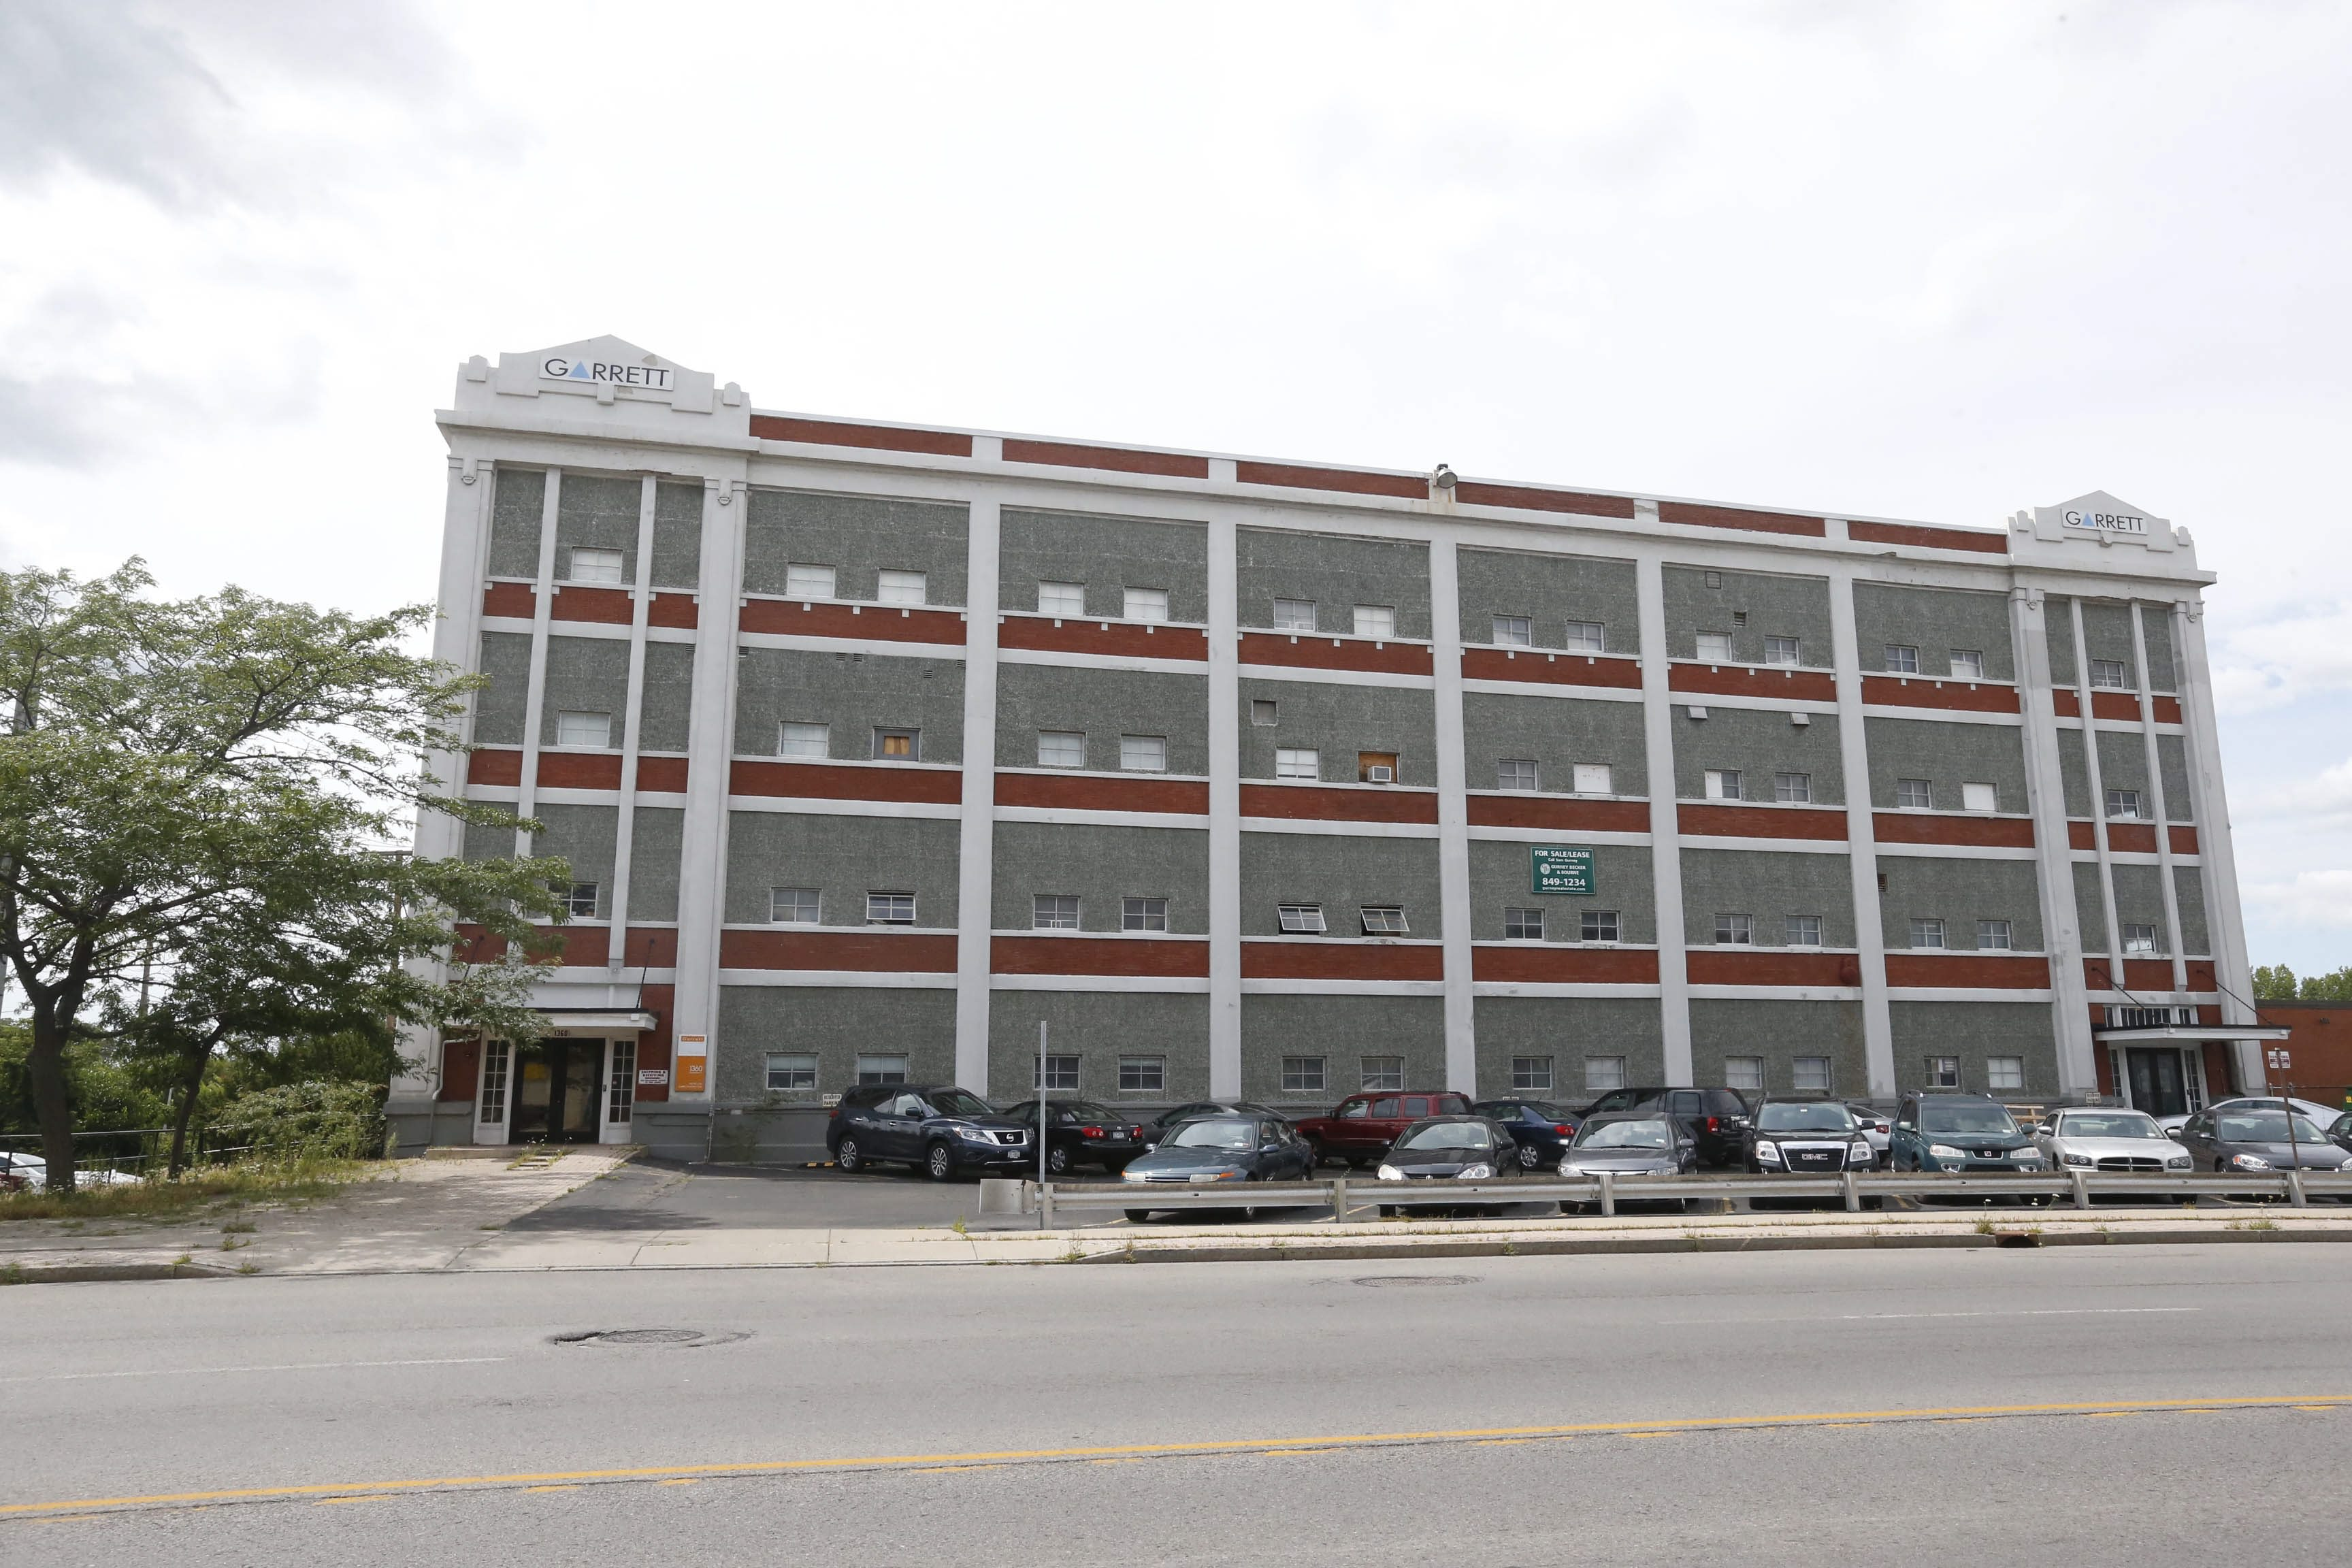 The former home of Garrett Leather, and before that The Mentholatum Co., at 1360 Niagara St., will become an apartment building. (Robert Kirkham/News file photo)